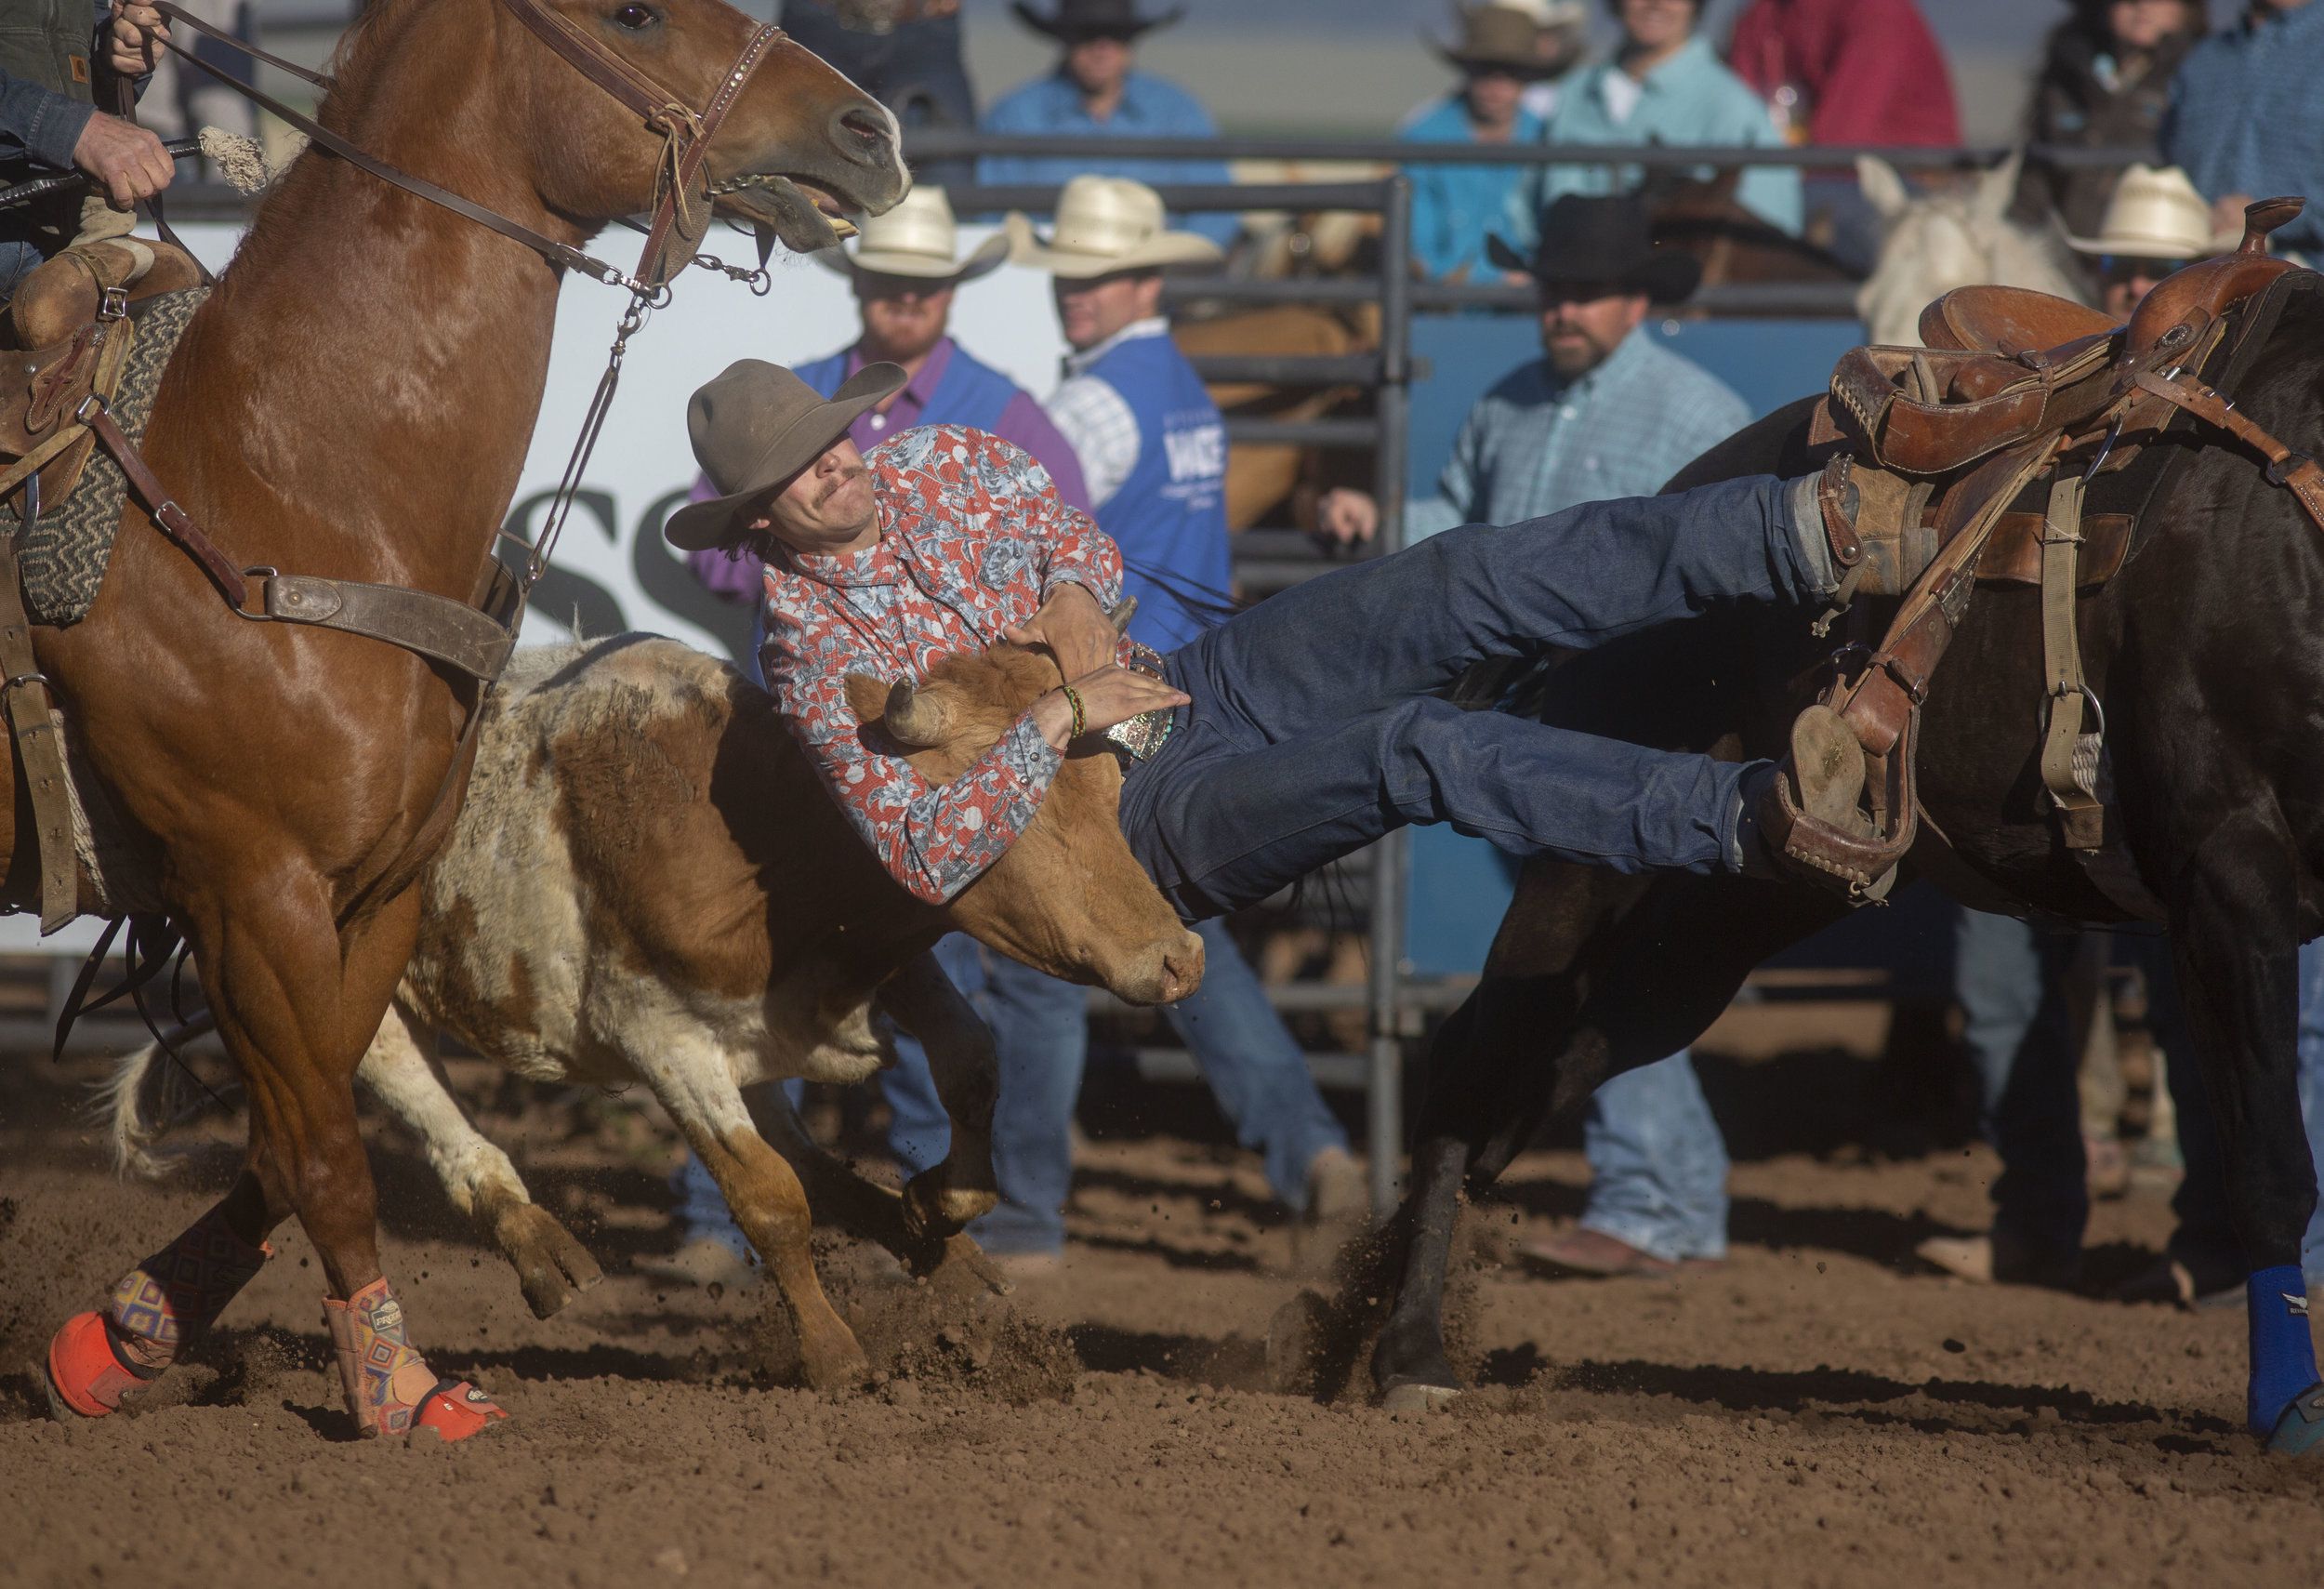 A cowboy jumps off a horse and grabs a steer.